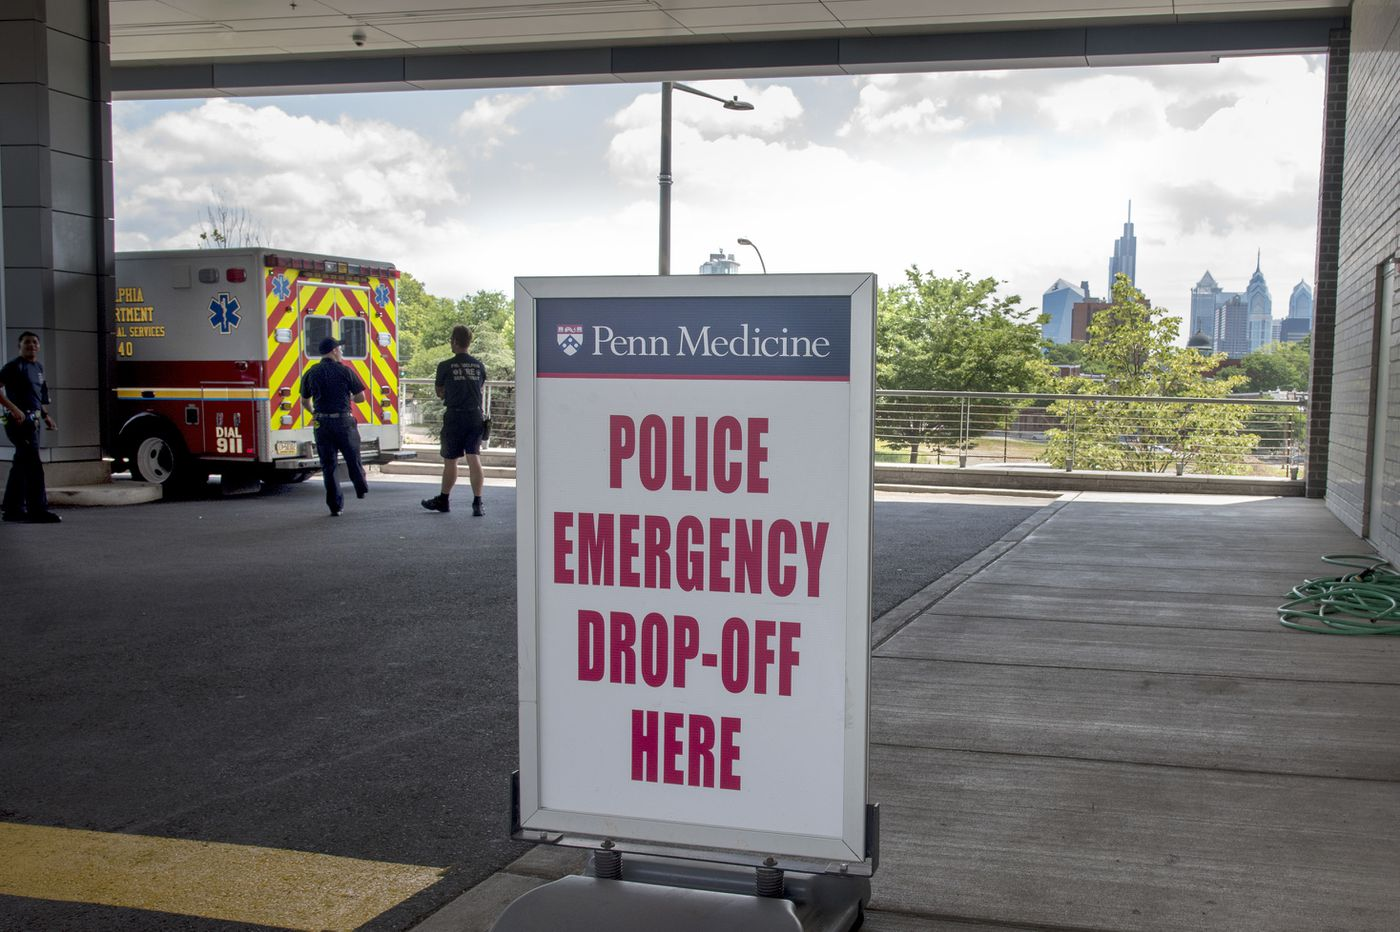 Penn dedicates police emergency drop-off lane for gunshot victims